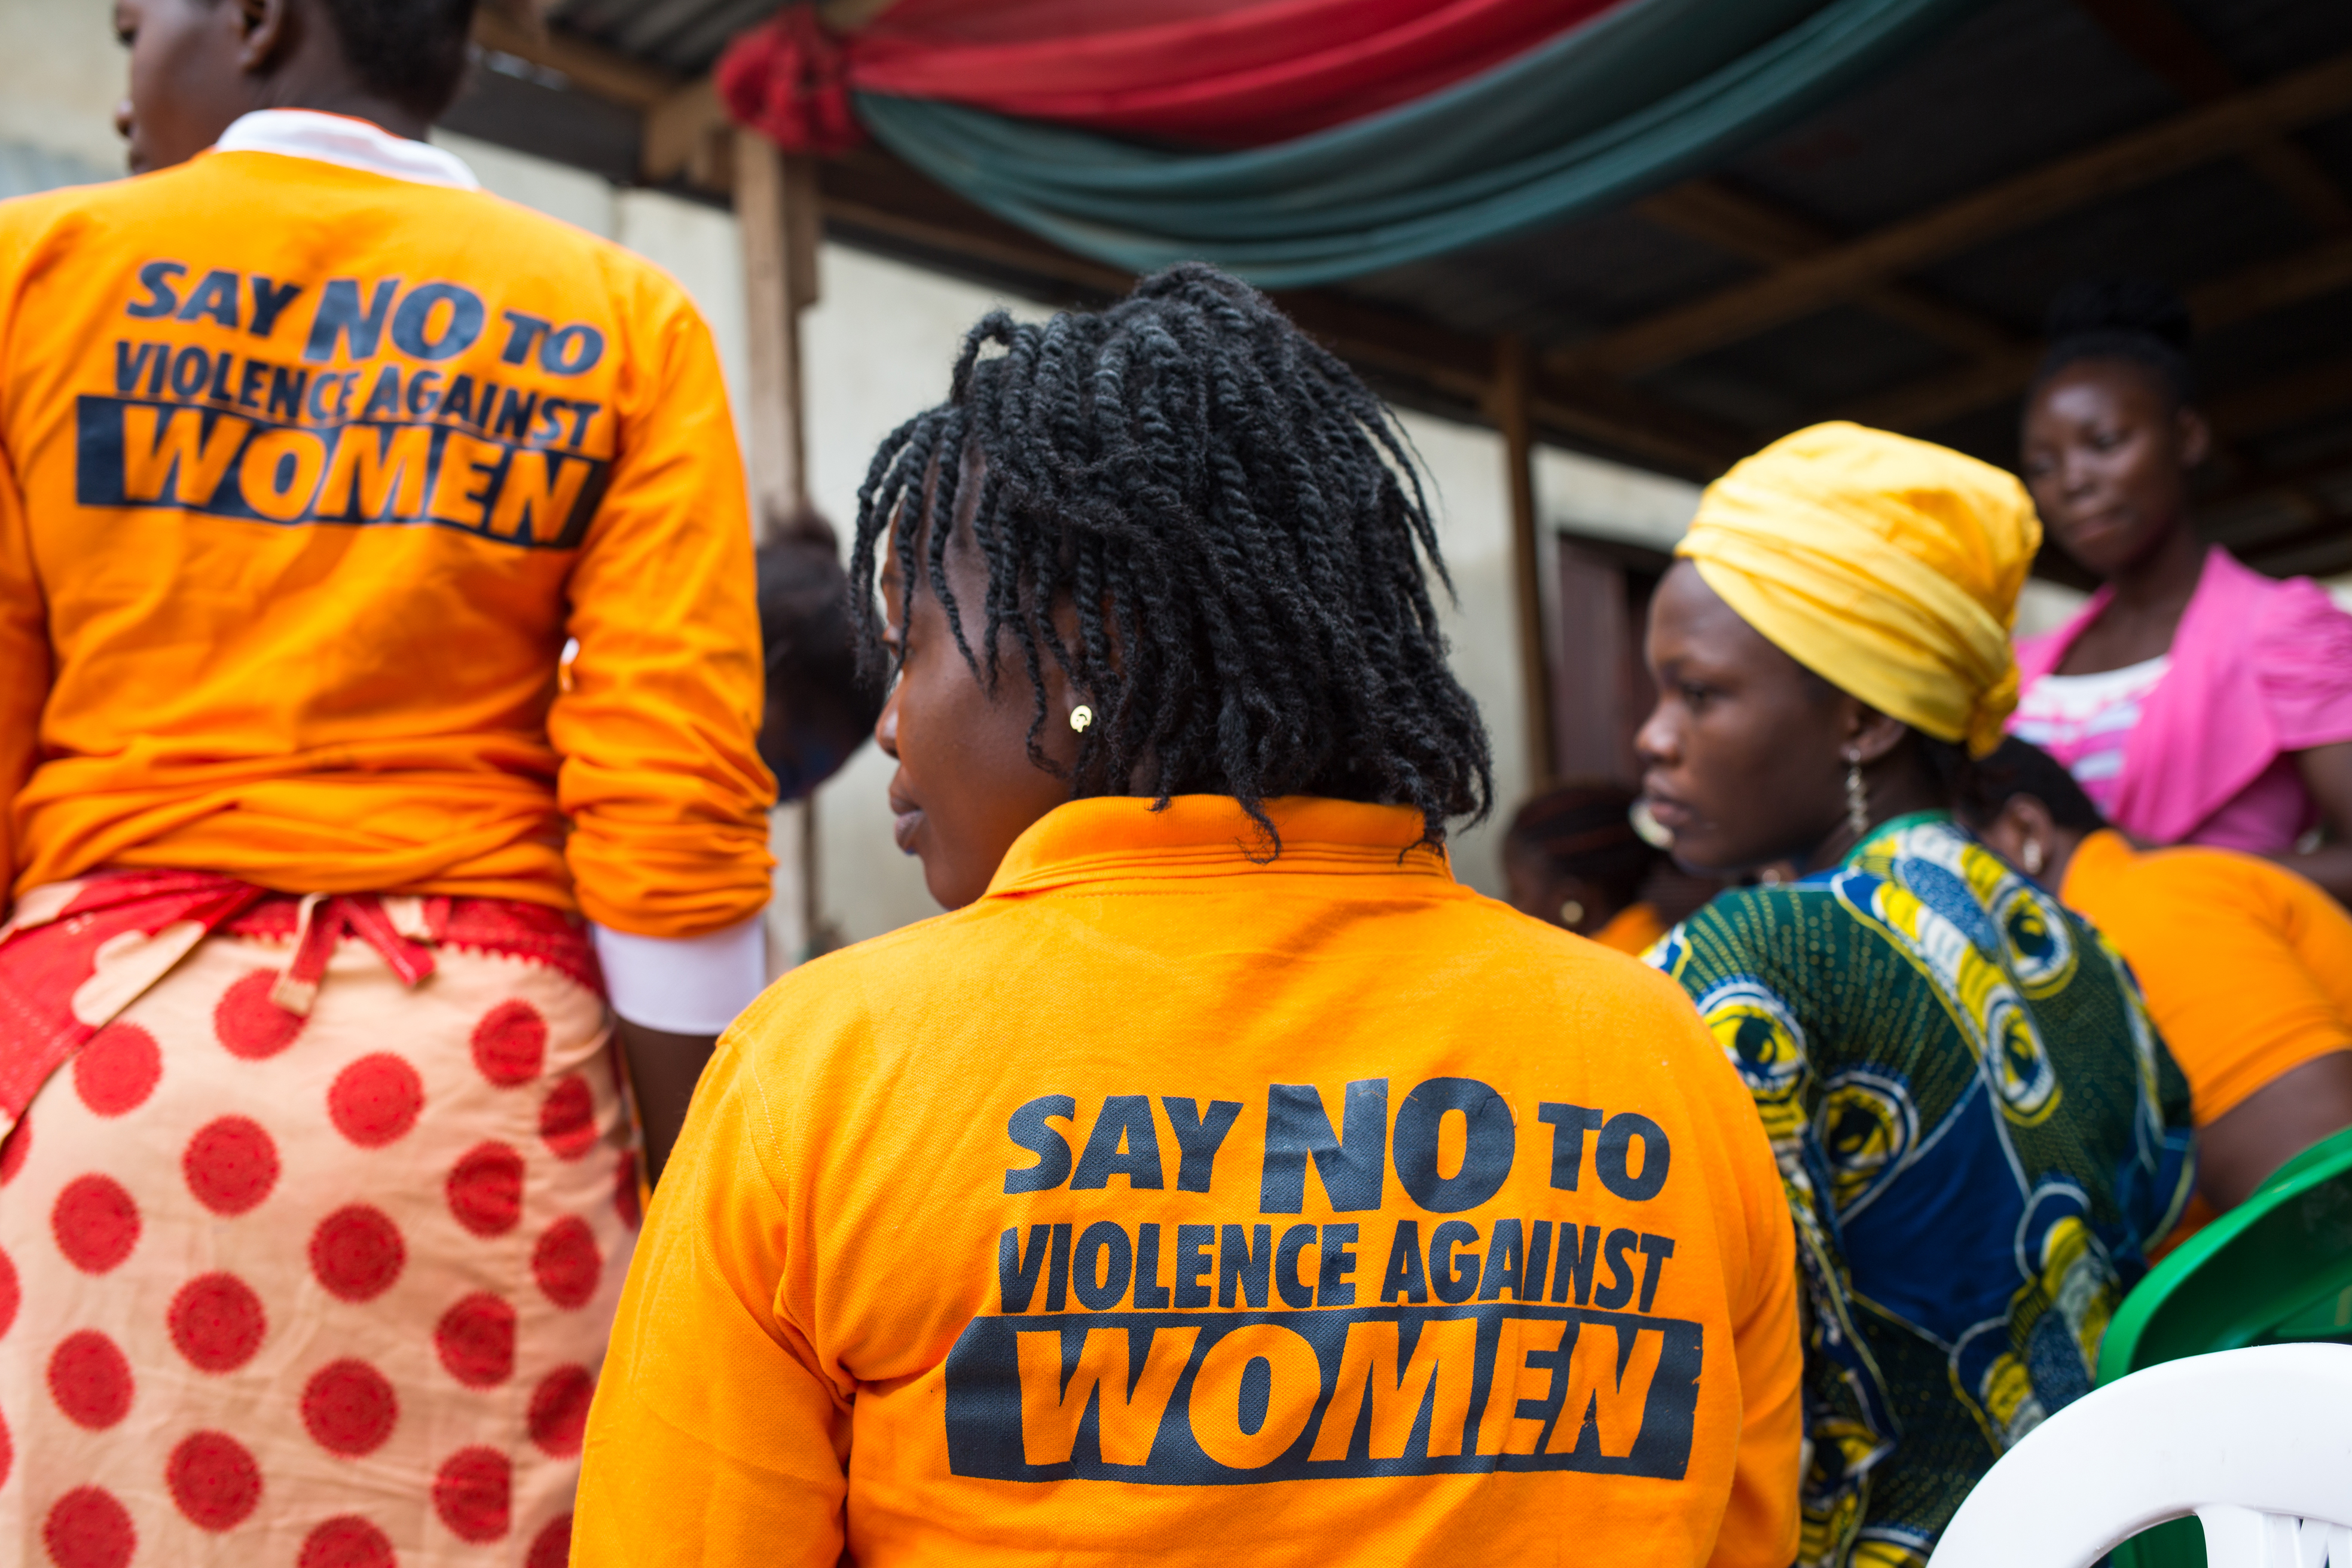 HIGHLIGHTS FROM THE 2016 CAMPAIGN ON 16 DAYS OF ACTIVISM AGAINST GENDER-BASED VIOLENCE